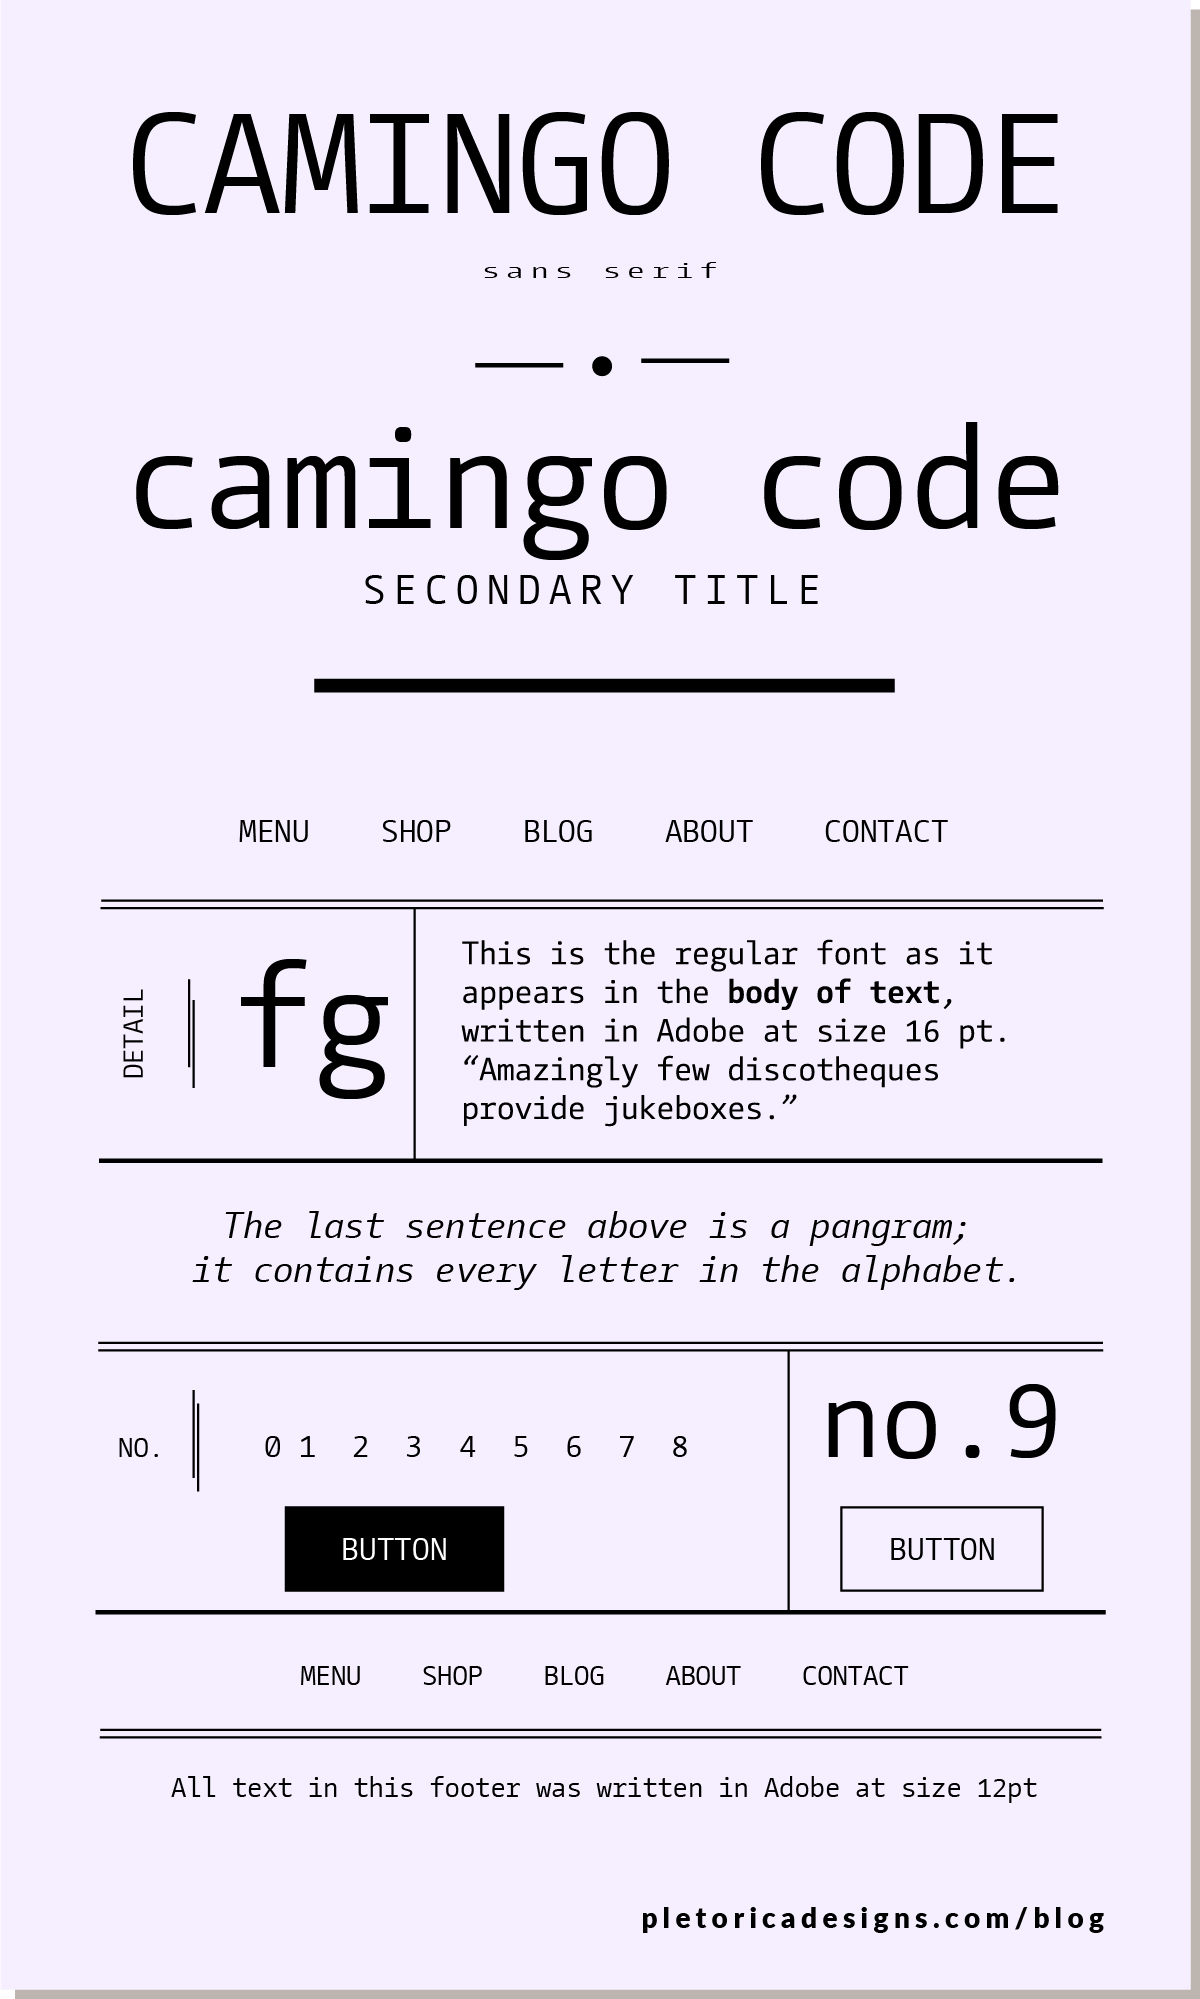 LET'S TYPE: Camingo — PLETÓRICA DESIGNS